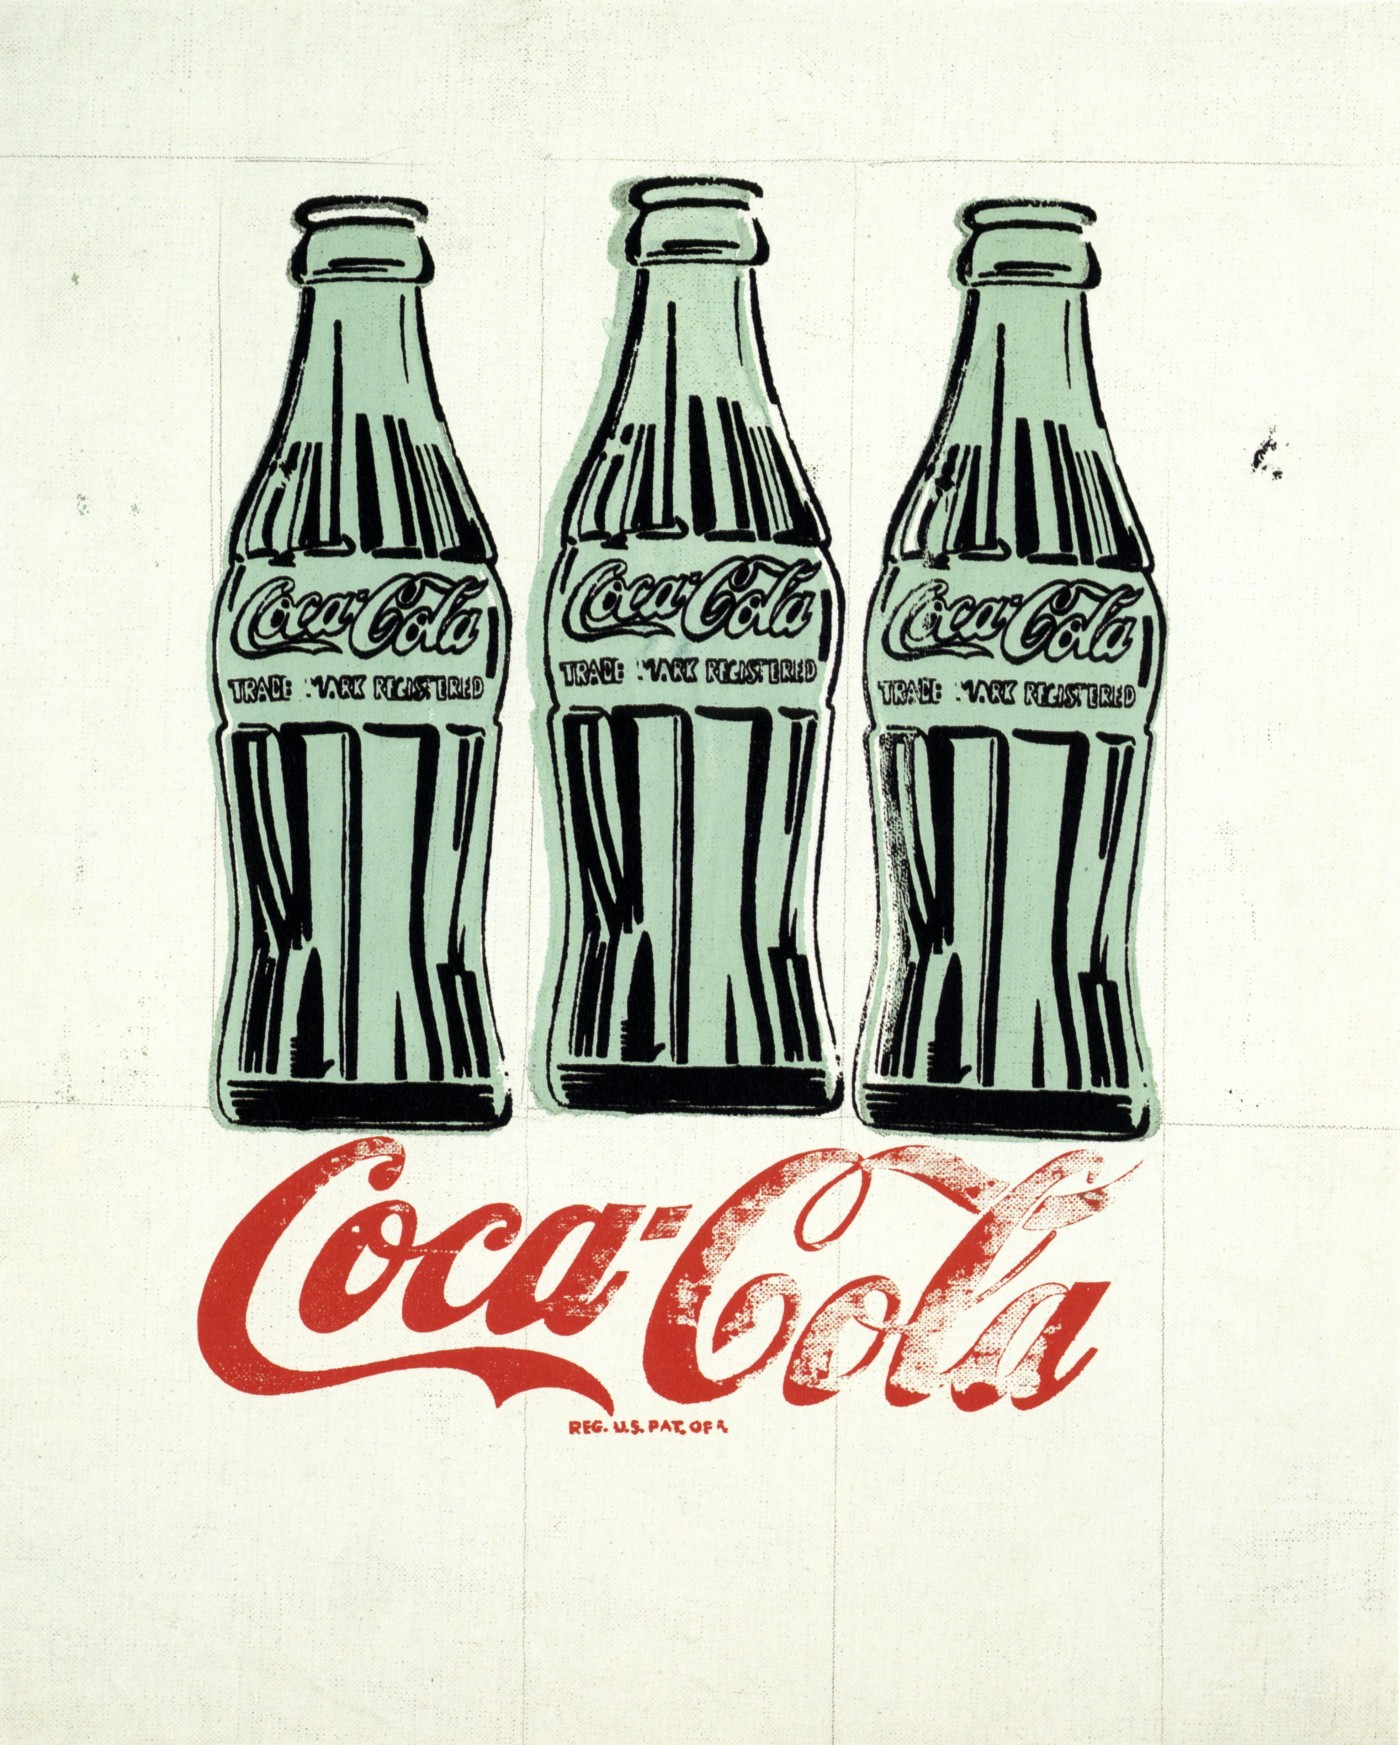 Andy Warhol (American, 1928–1987), Three Coke Bottles, 1962, silkscreen, ink, and graphite on linen, The Andy Warhol Museum, Pittsburg; Founding Collection, Contribution The Andy Warhol Foundation for Visual Arts, Inc., 1998.1.20. © 2015 The Andy Warhol Foundation for the Visual Arts, Inc. / Artists